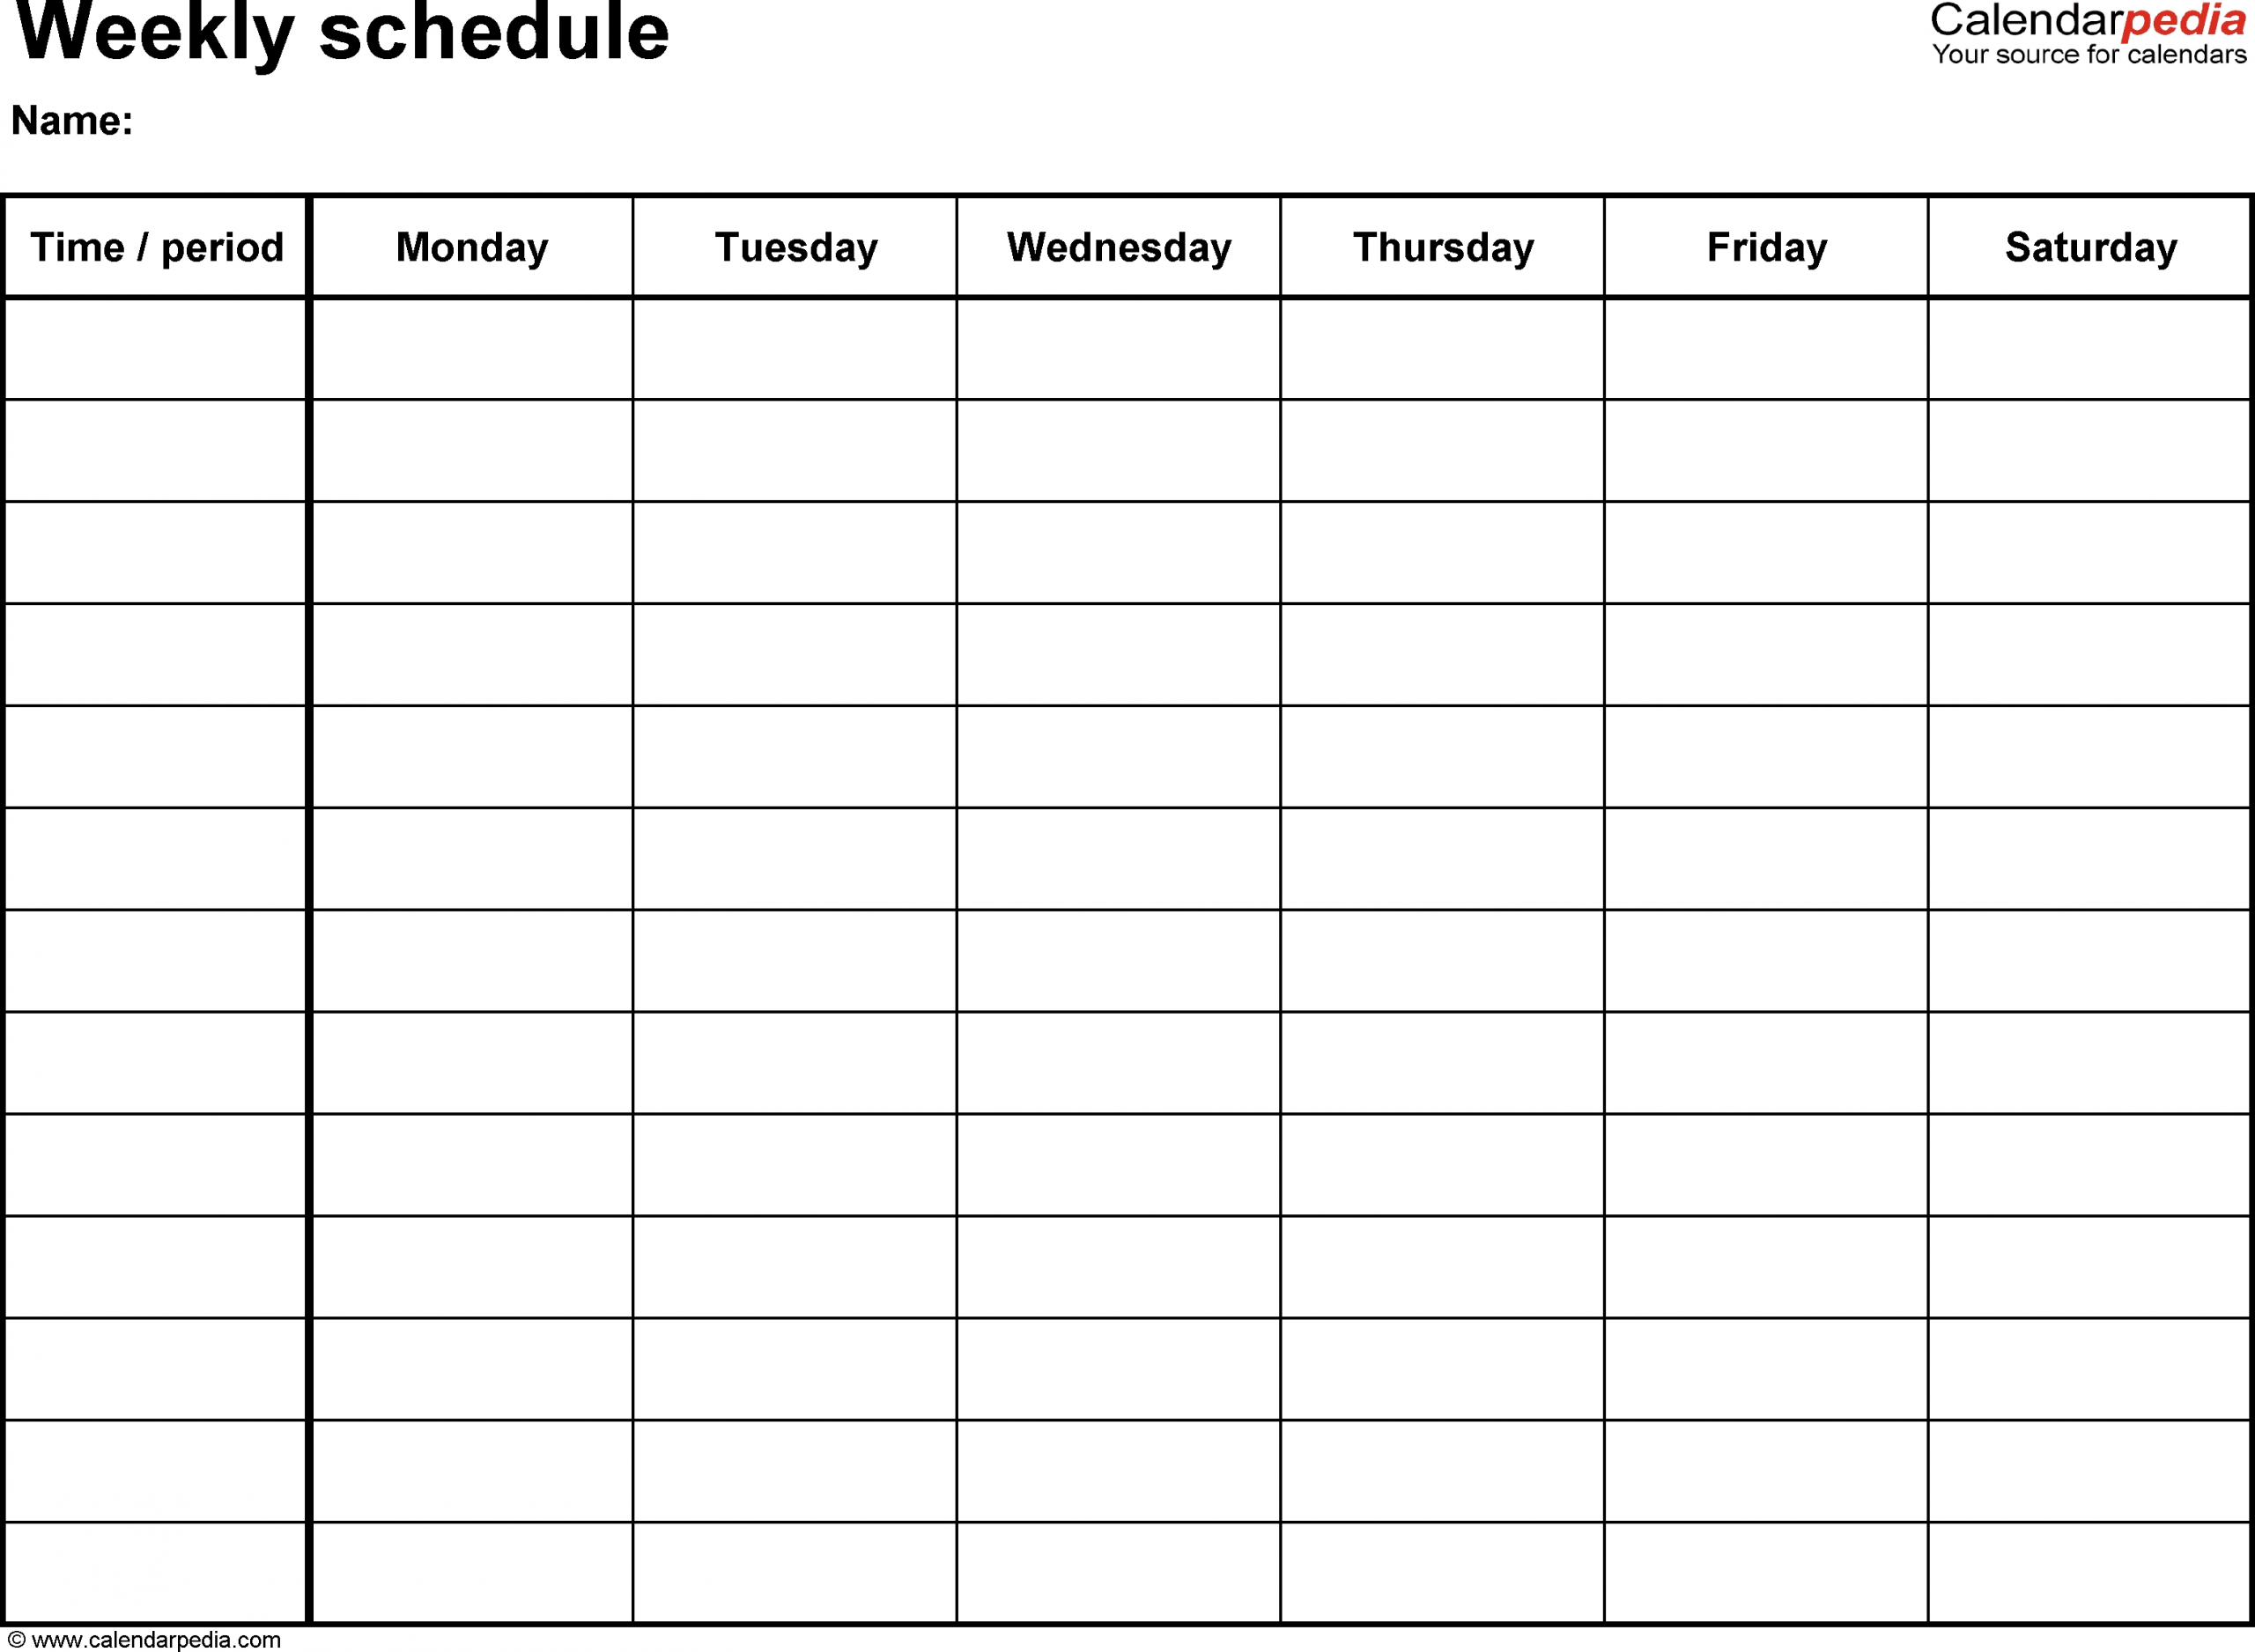 Printable Weekly Calendar With 15 Minute Time Slots Day Calendar With Times